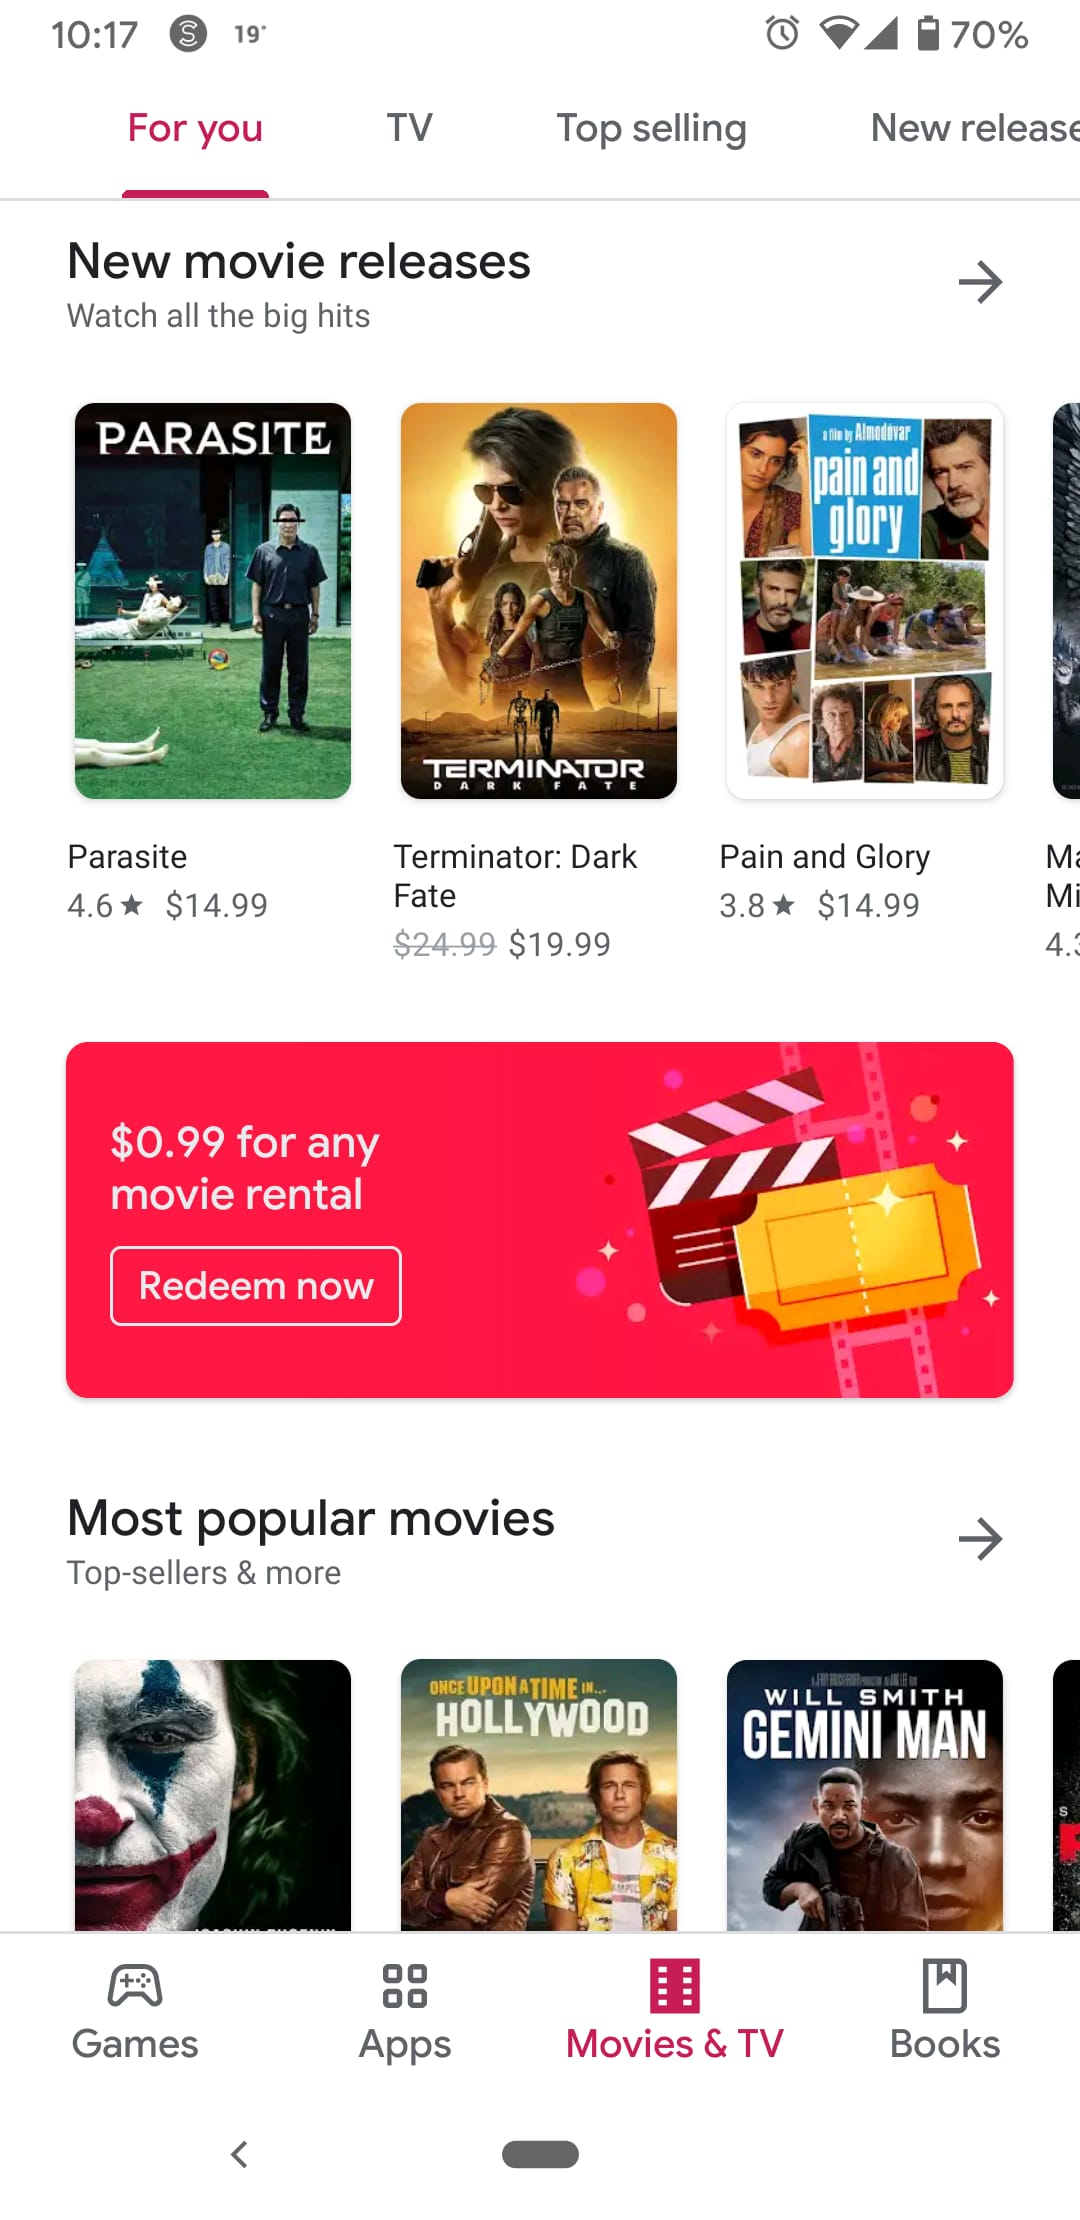 Google play any movie rental for $0.99 YMMV